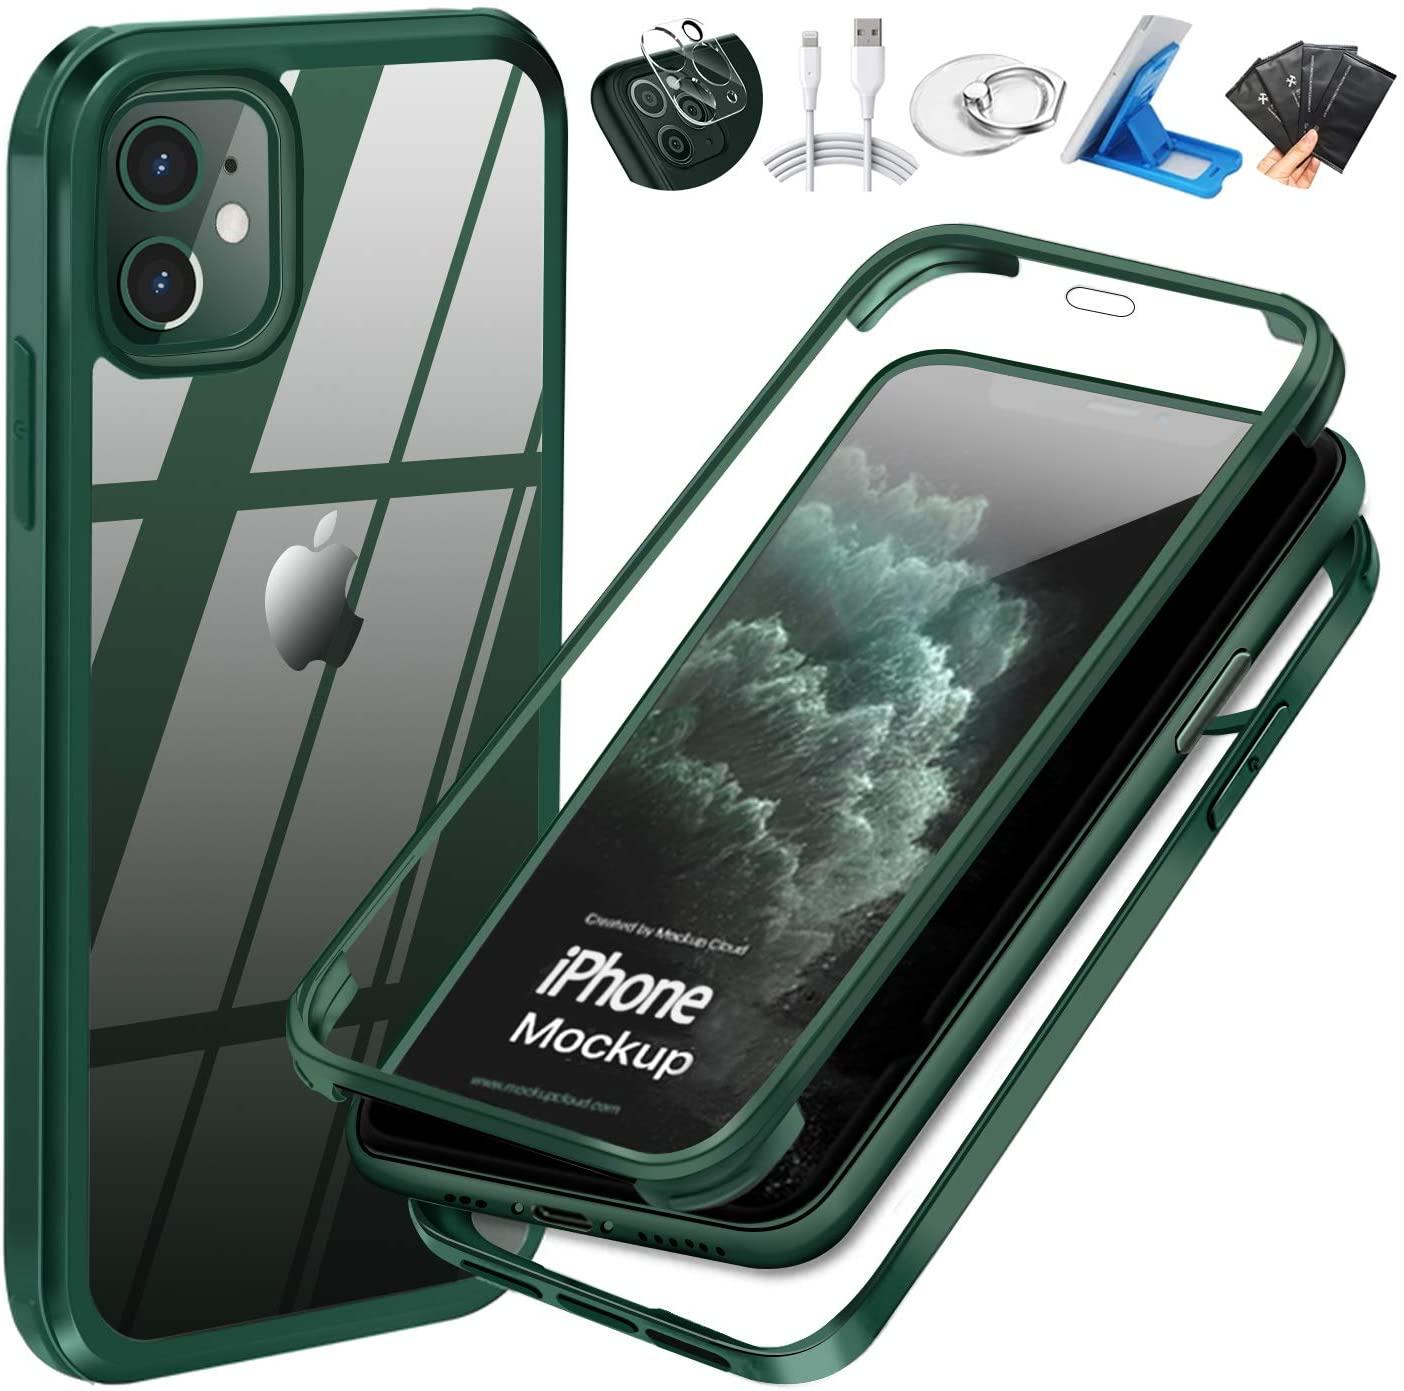 UBUNU iPhone 11 Case with Built-in Tempered Glass Screen Protector, 360 Full Body Heavy Duty Shockproof Dual Layer Rugged Silicone Rubber Bumper Protective Clear iPhone 11 Cases 6.1 inch - Green